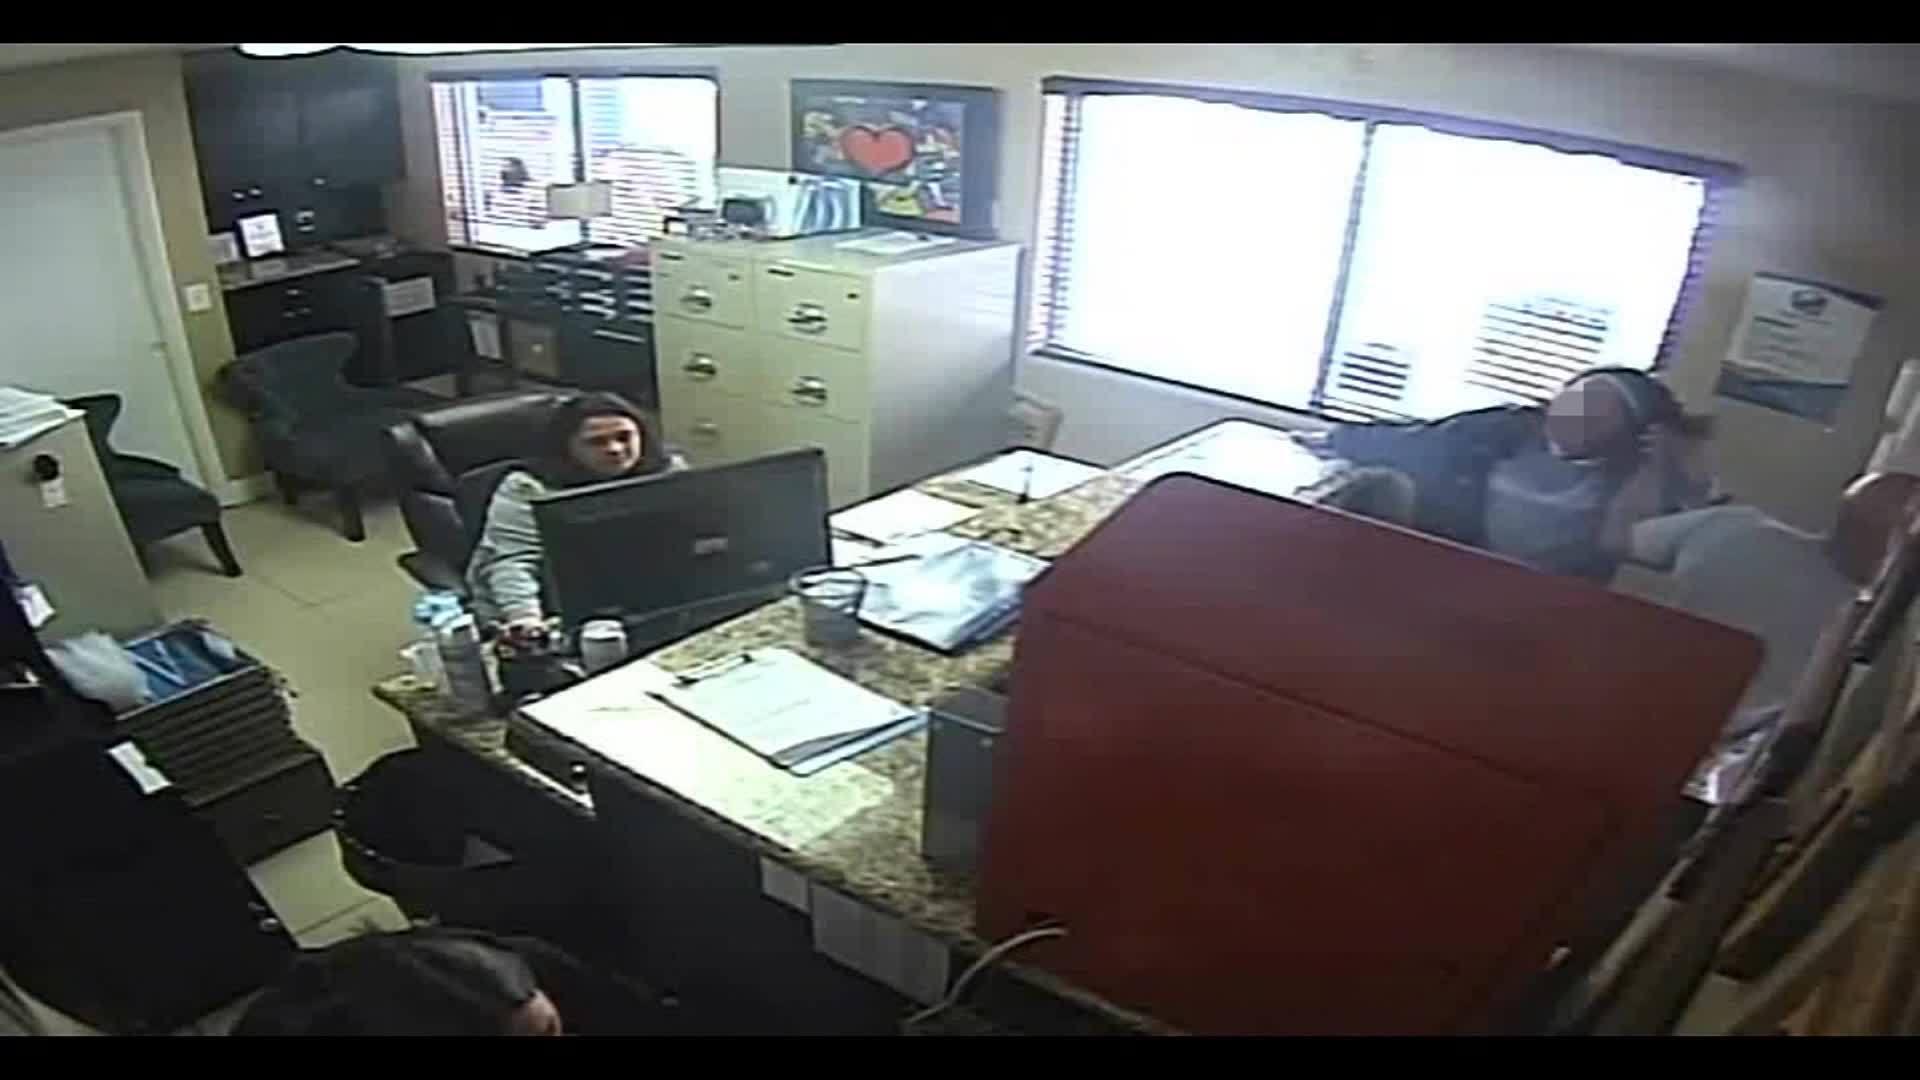 Florida cop beats daughter in school office as employees watch